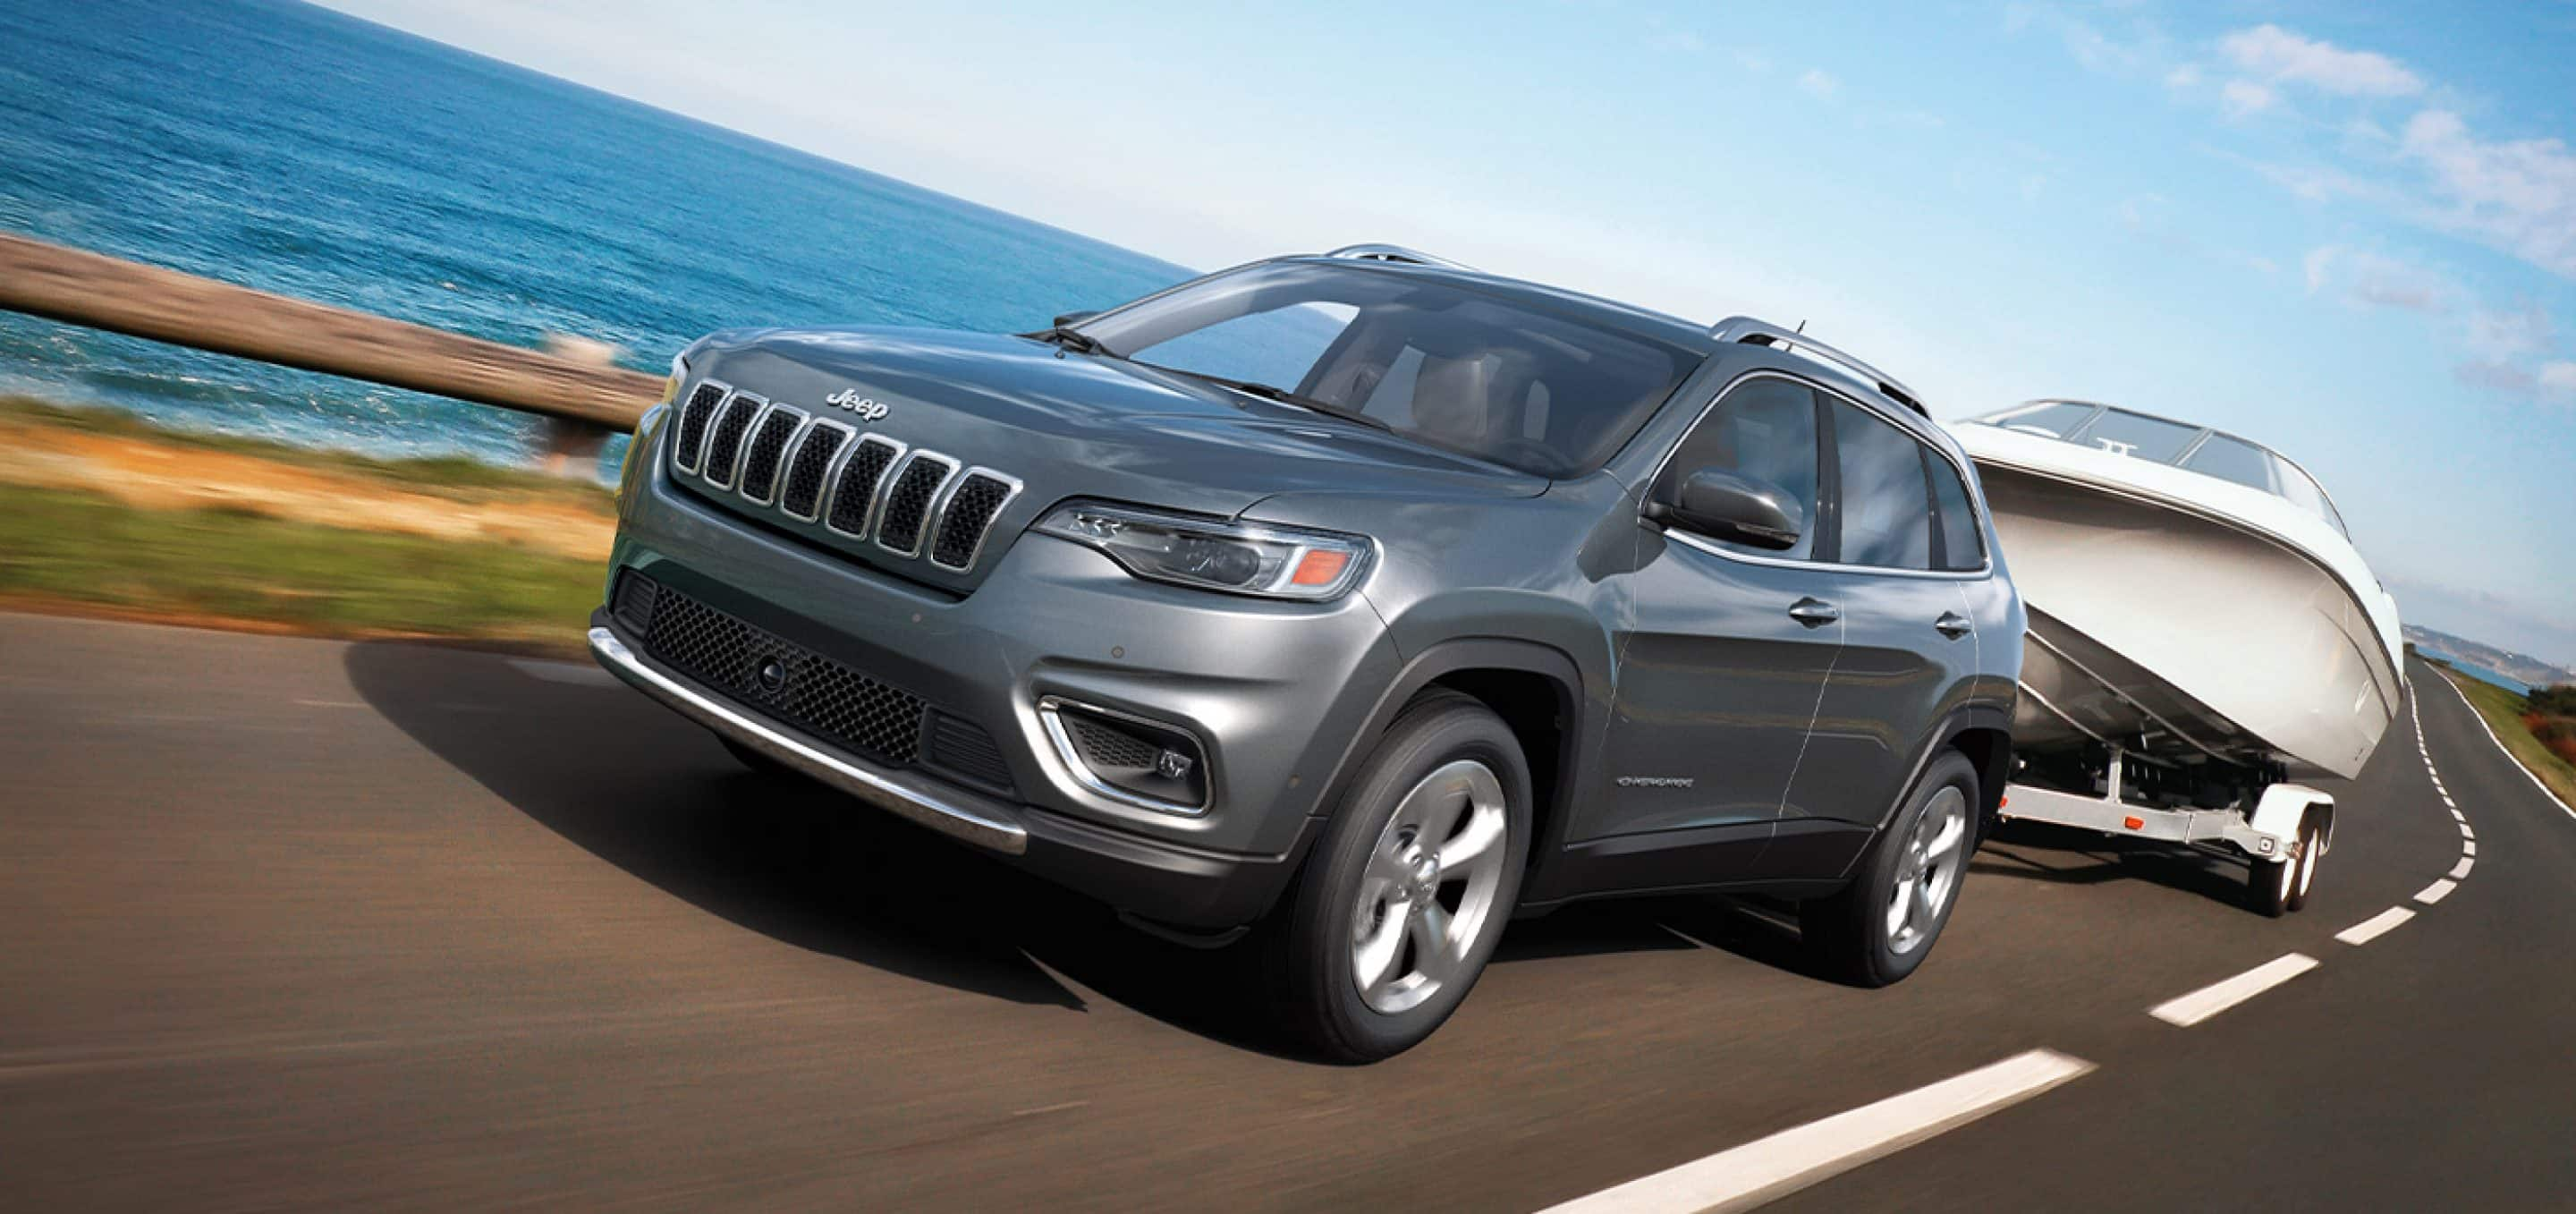 Trim Levels of the 2021 Jeep Cherokee